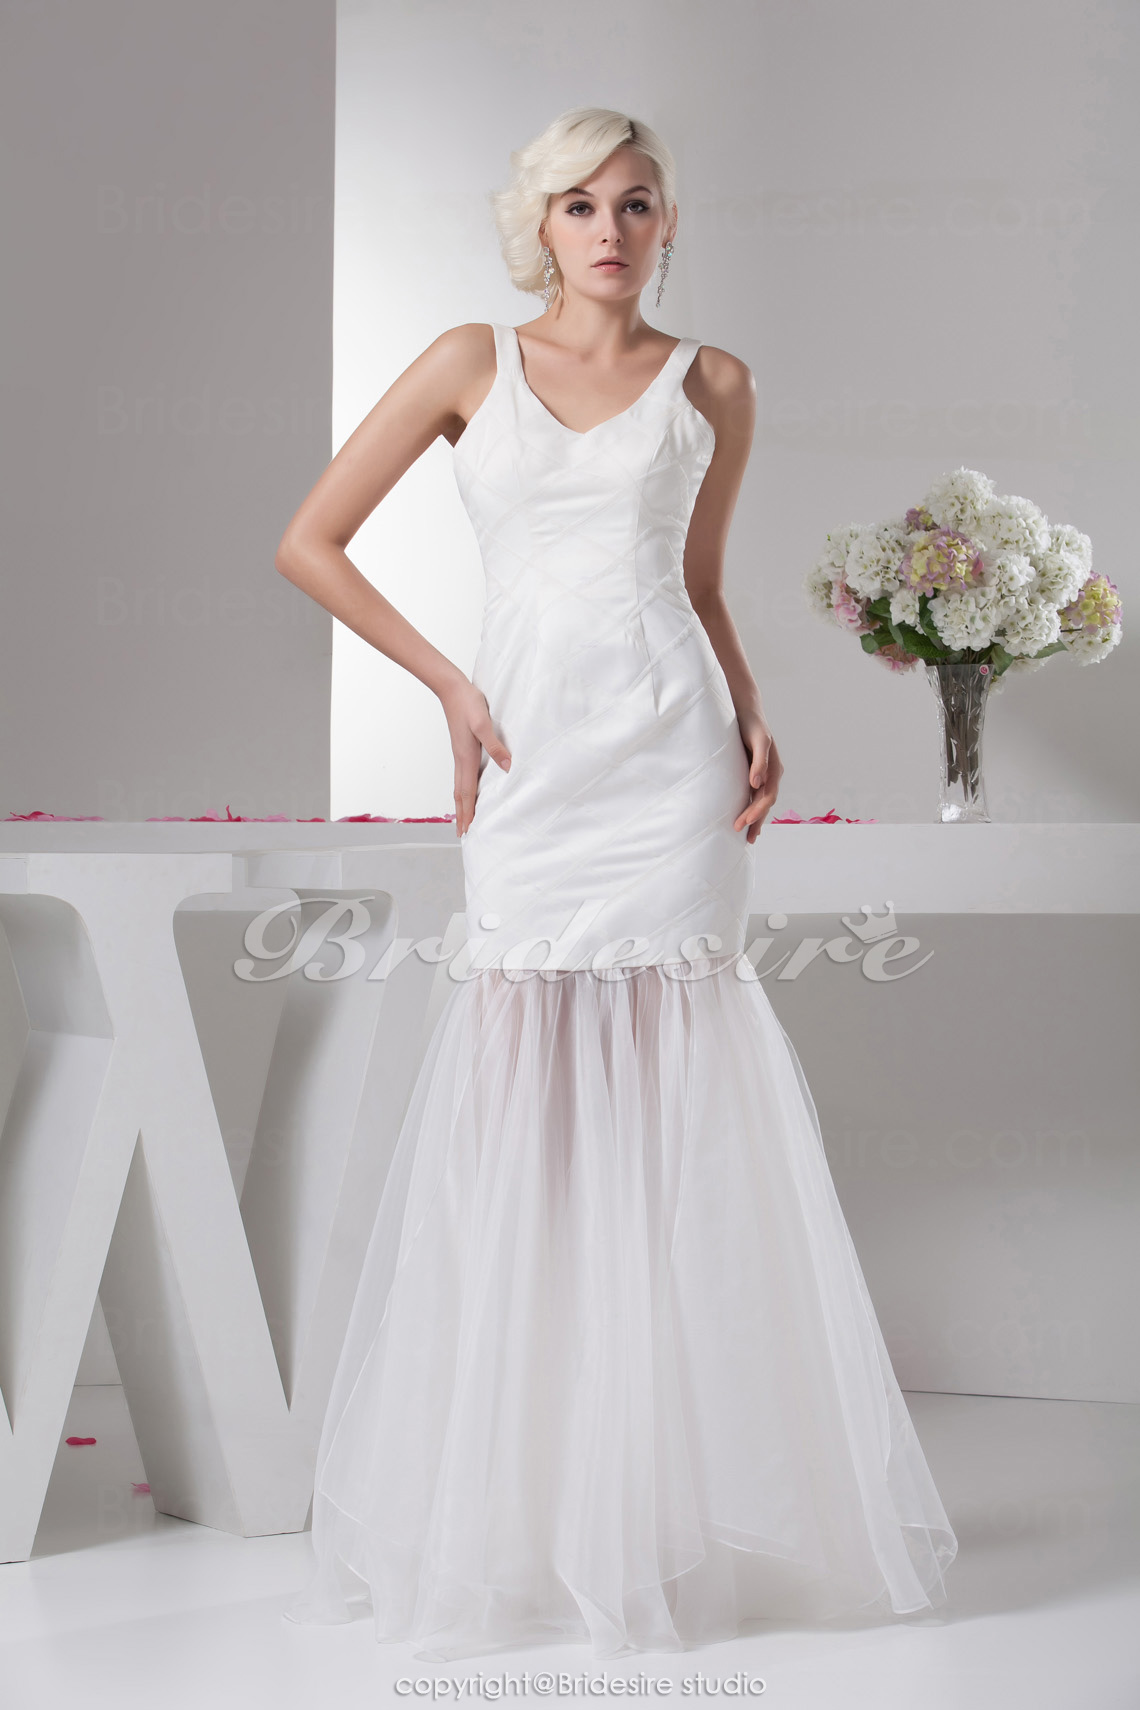 Trumpet/Mermaid V-neck Floor-length Sleeveless Satin Dress